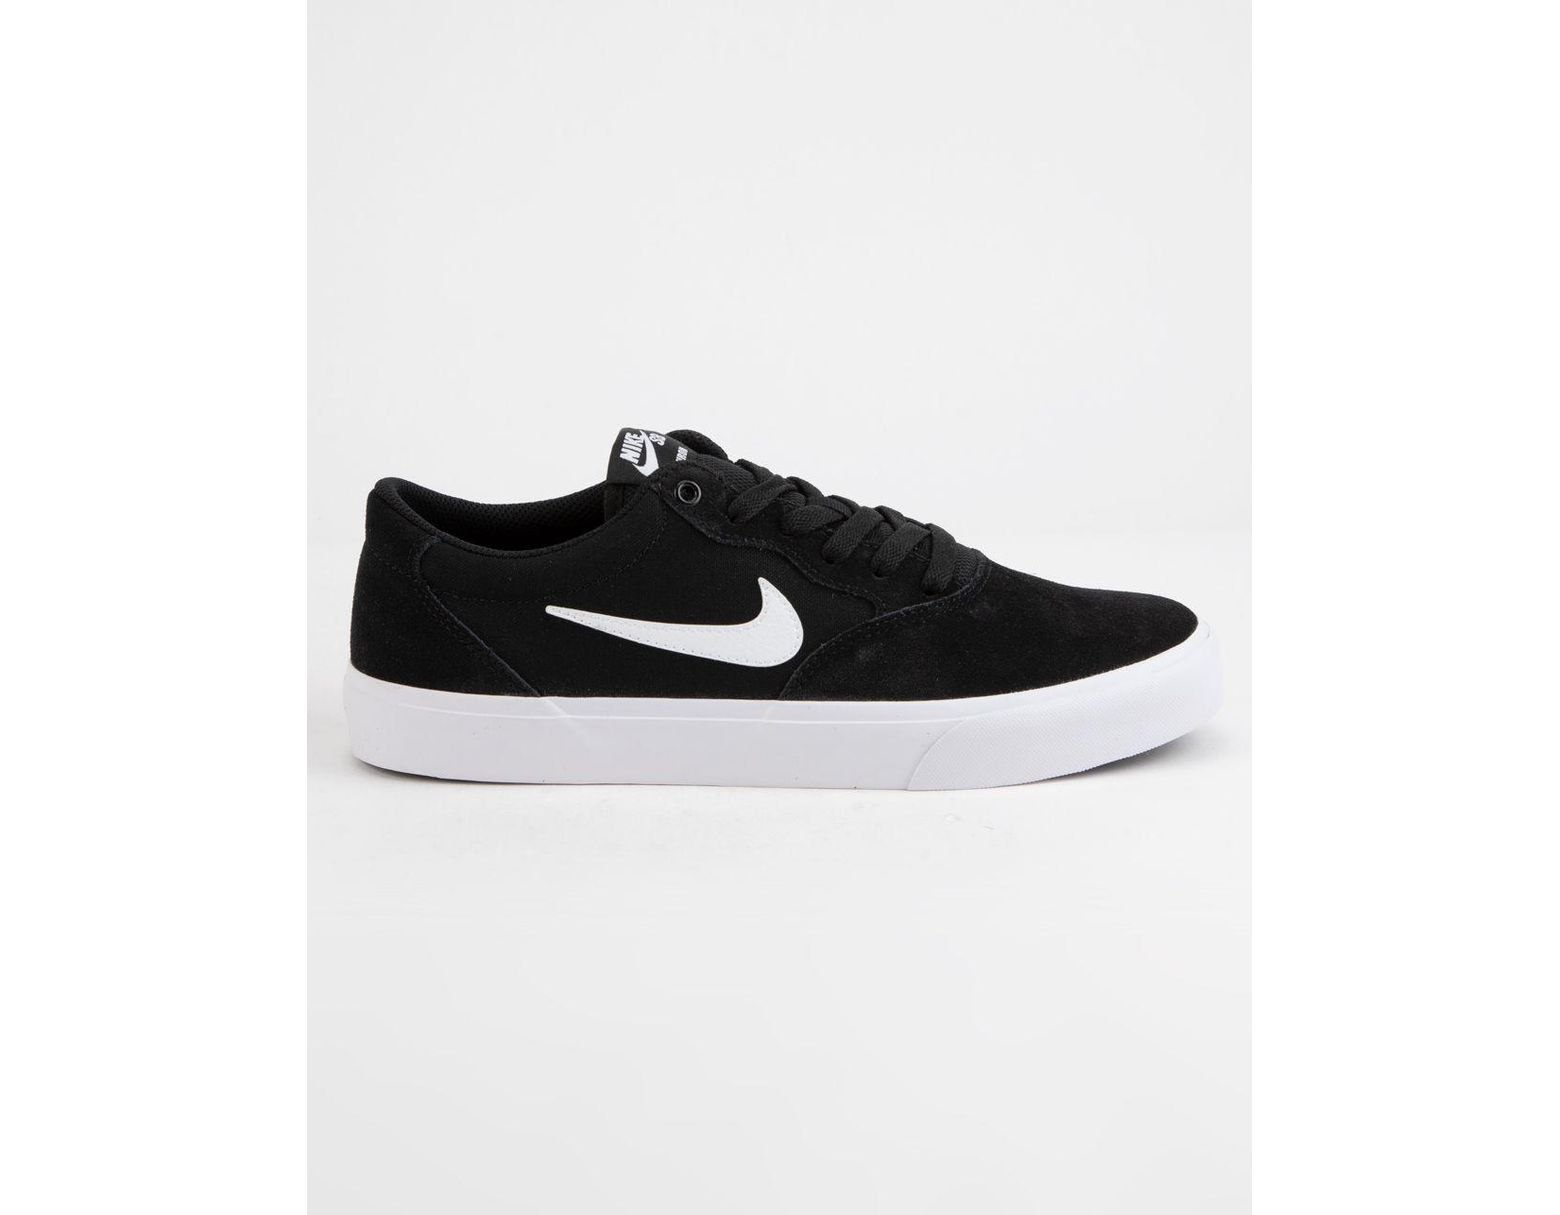 new products 9345a 2f3aa Nike. Men s Black Chron Slr Shoes